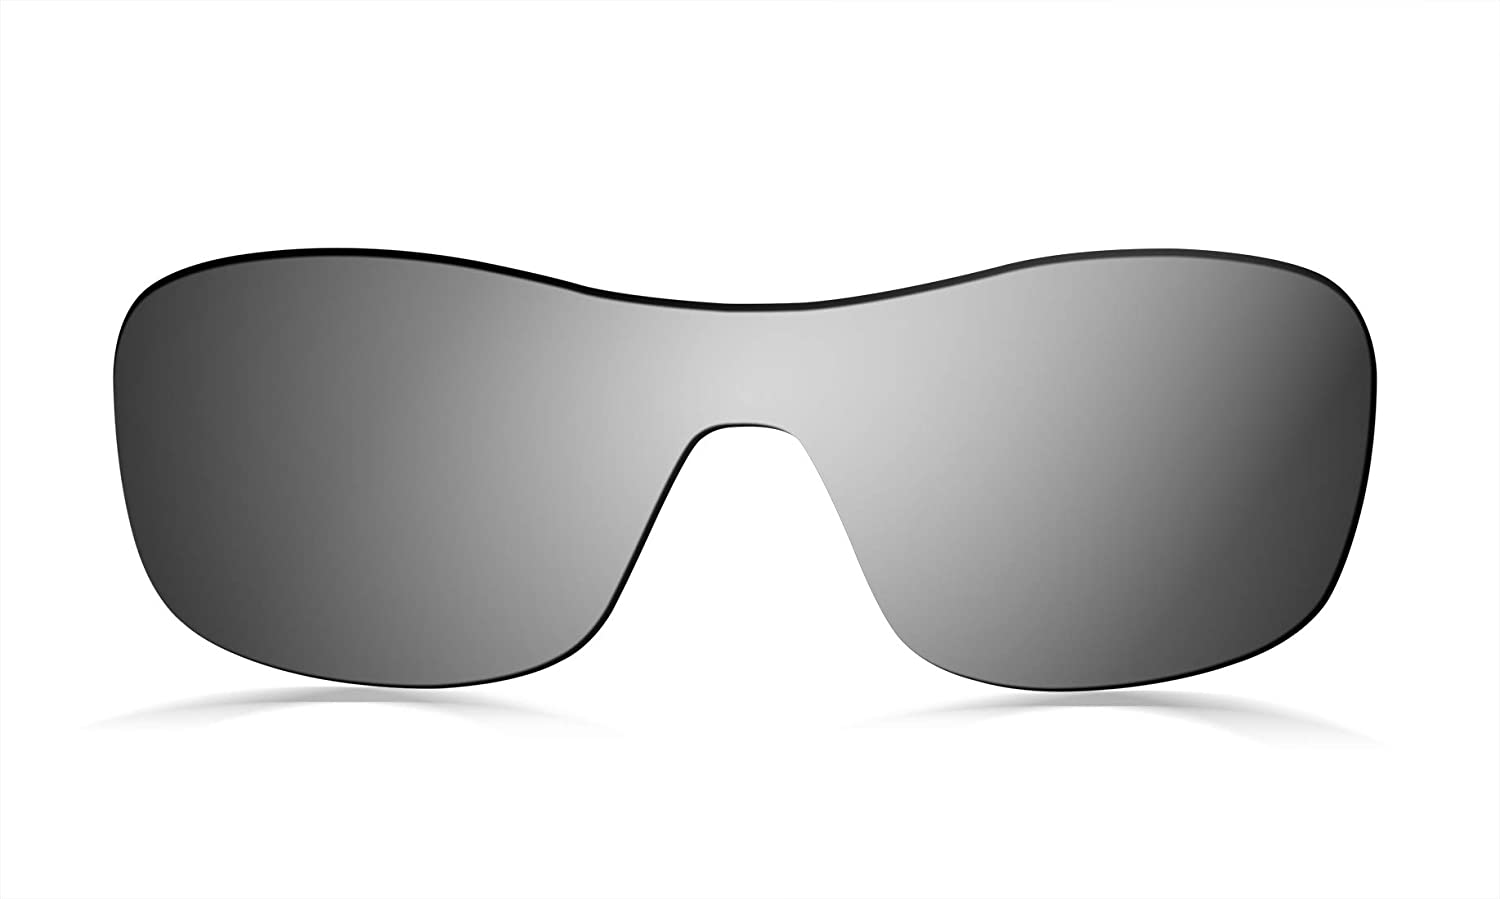 1160ceb32d6 Amazon.com  Prizo Polarized Replacement Lenses for Oakley Antix Sunglasses  (Black Iridium)  Clothing